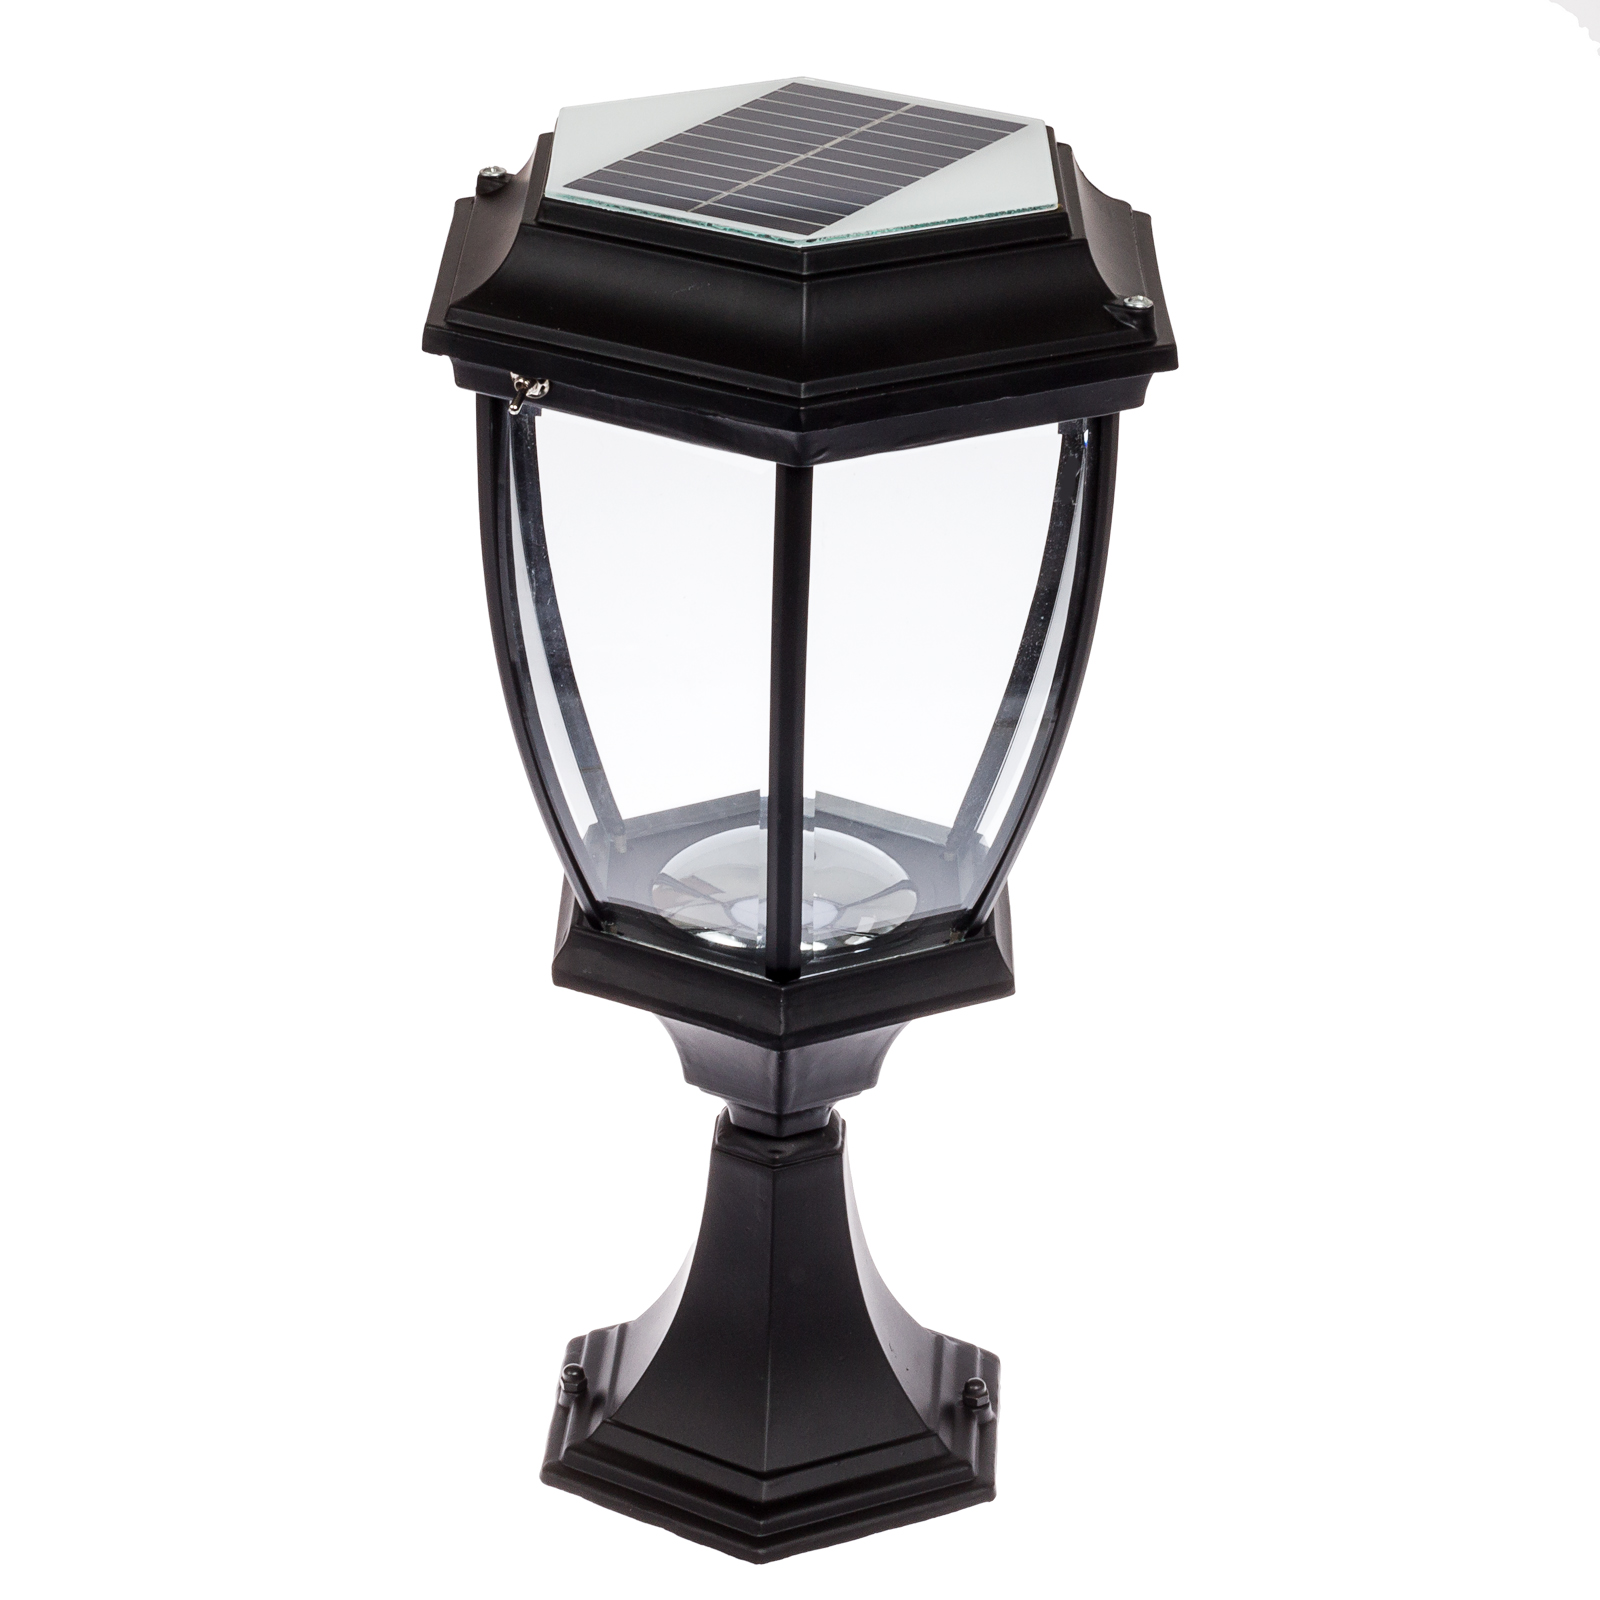 solar 12 led outdoor garden lamp column post topper lantern light. Black Bedroom Furniture Sets. Home Design Ideas